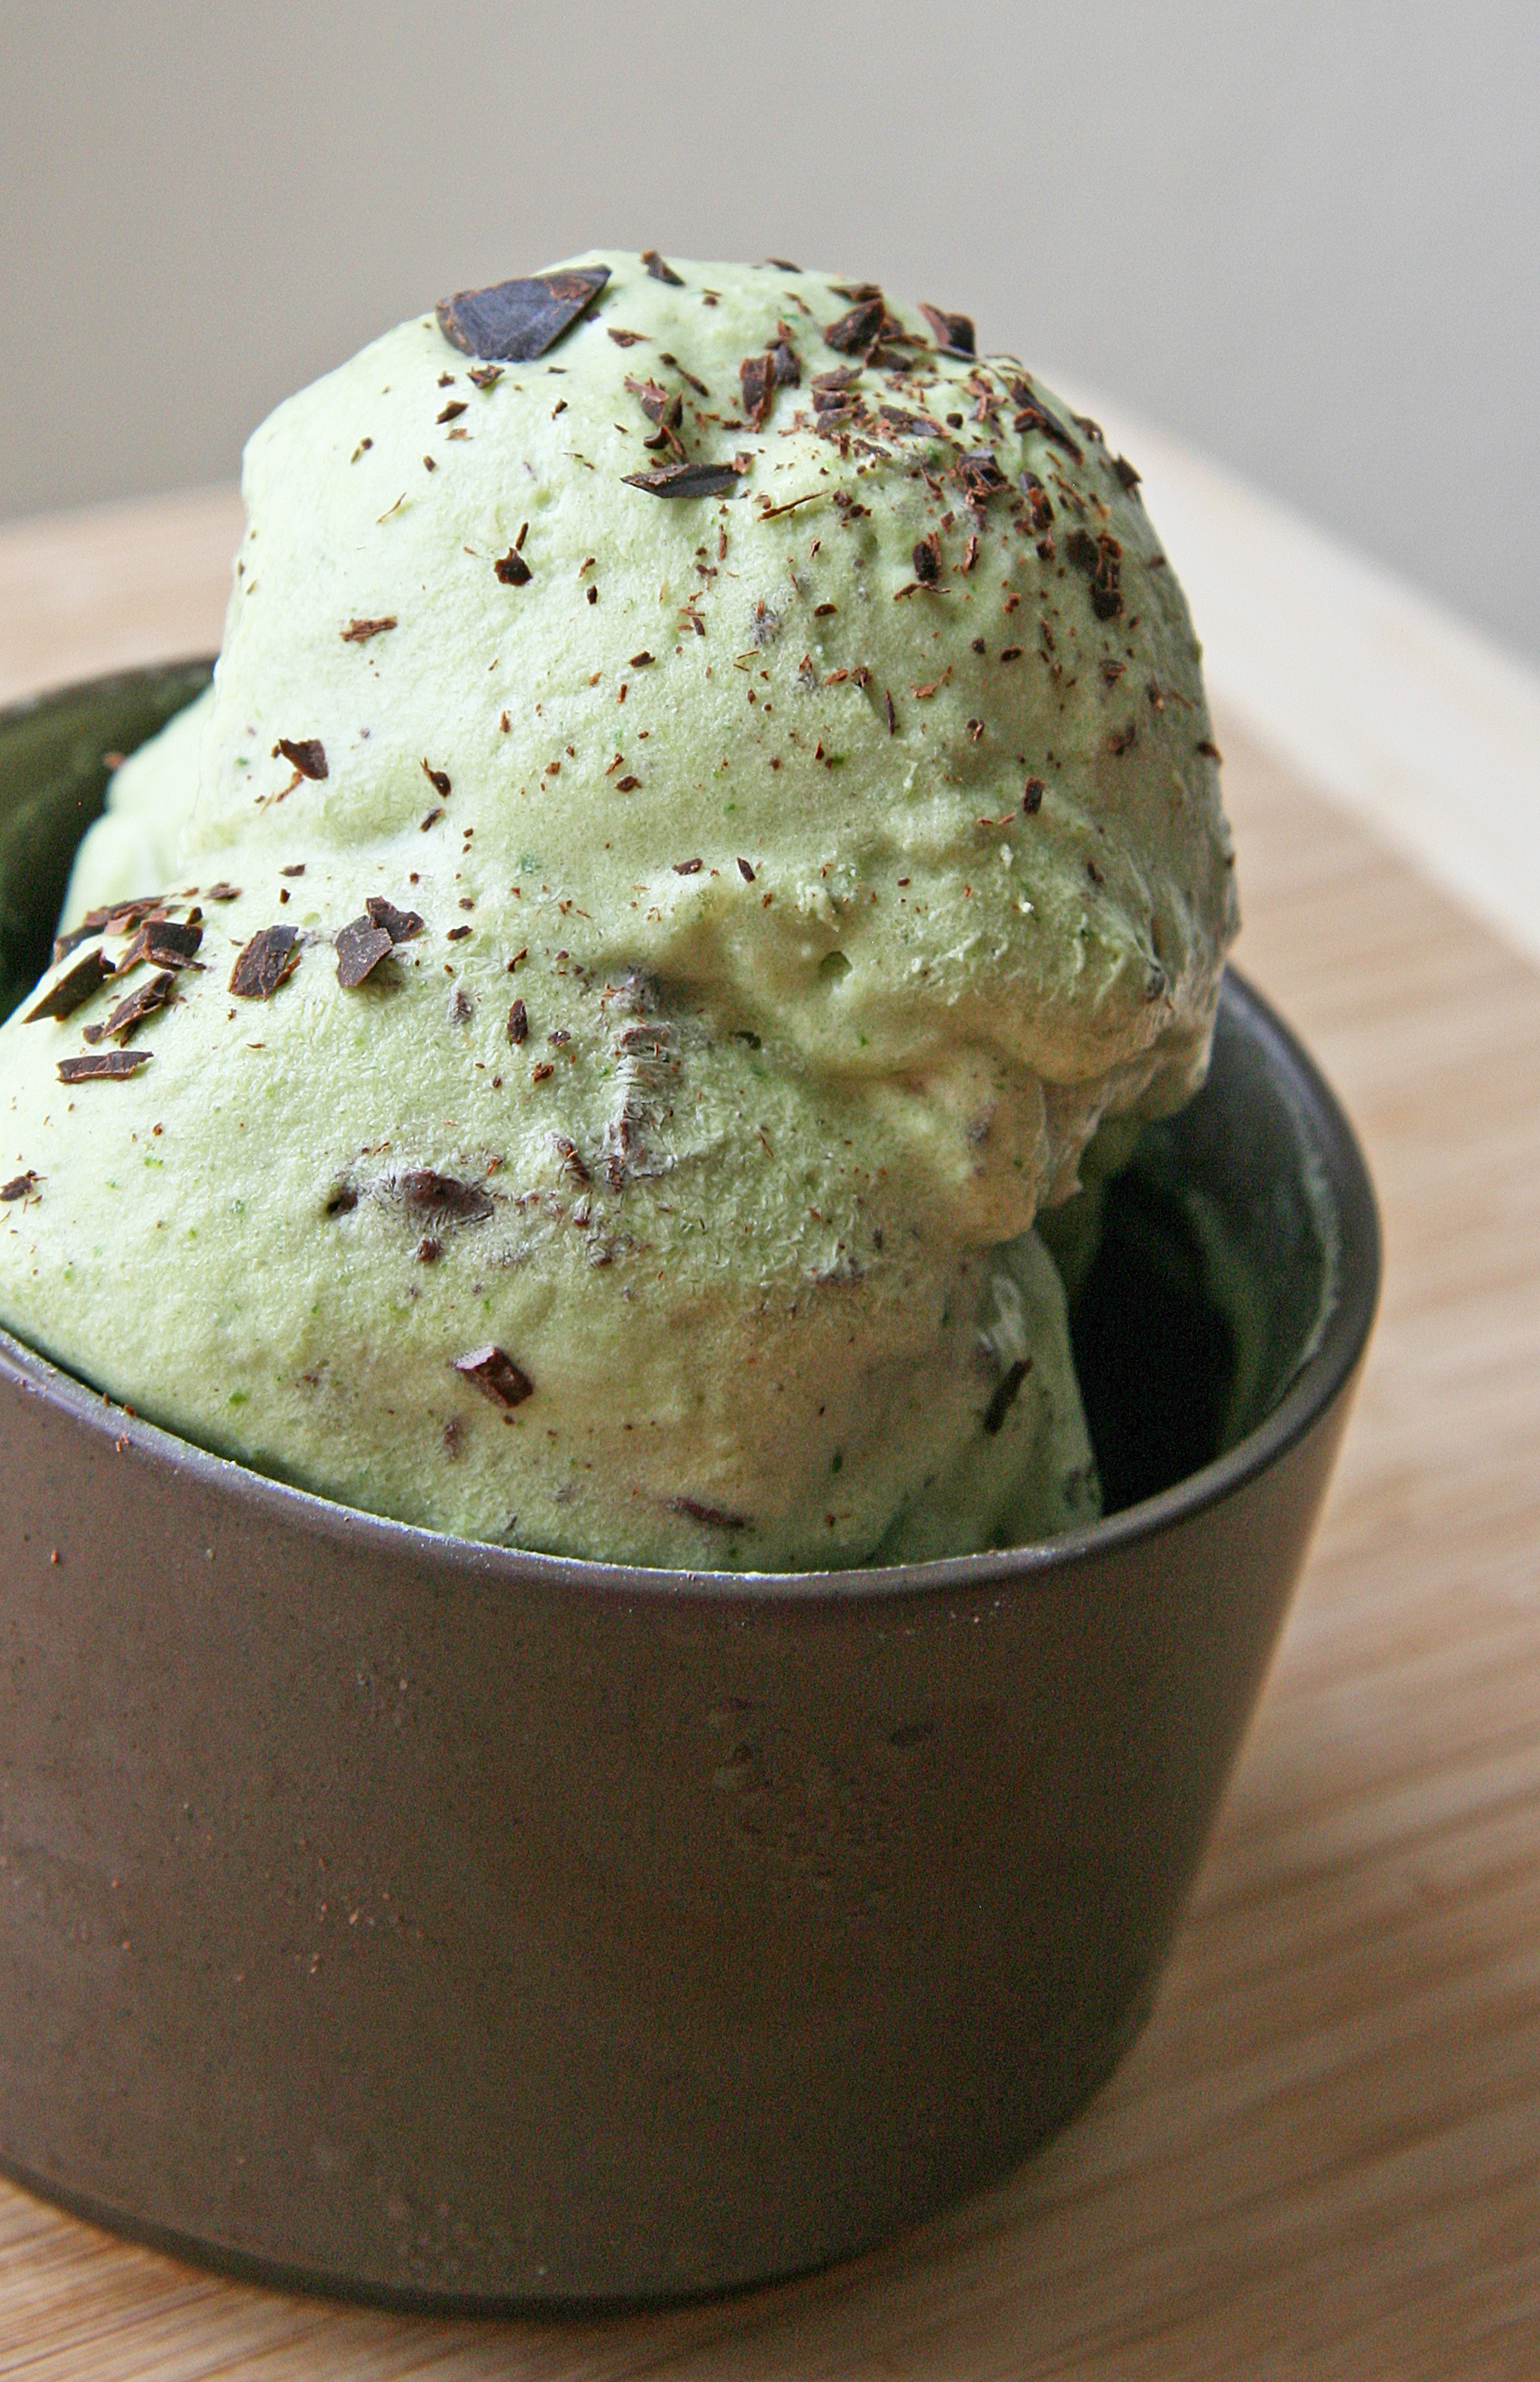 Mint Chocolate Chip Coconut Milk Ice Cream | Granite Chiropractic